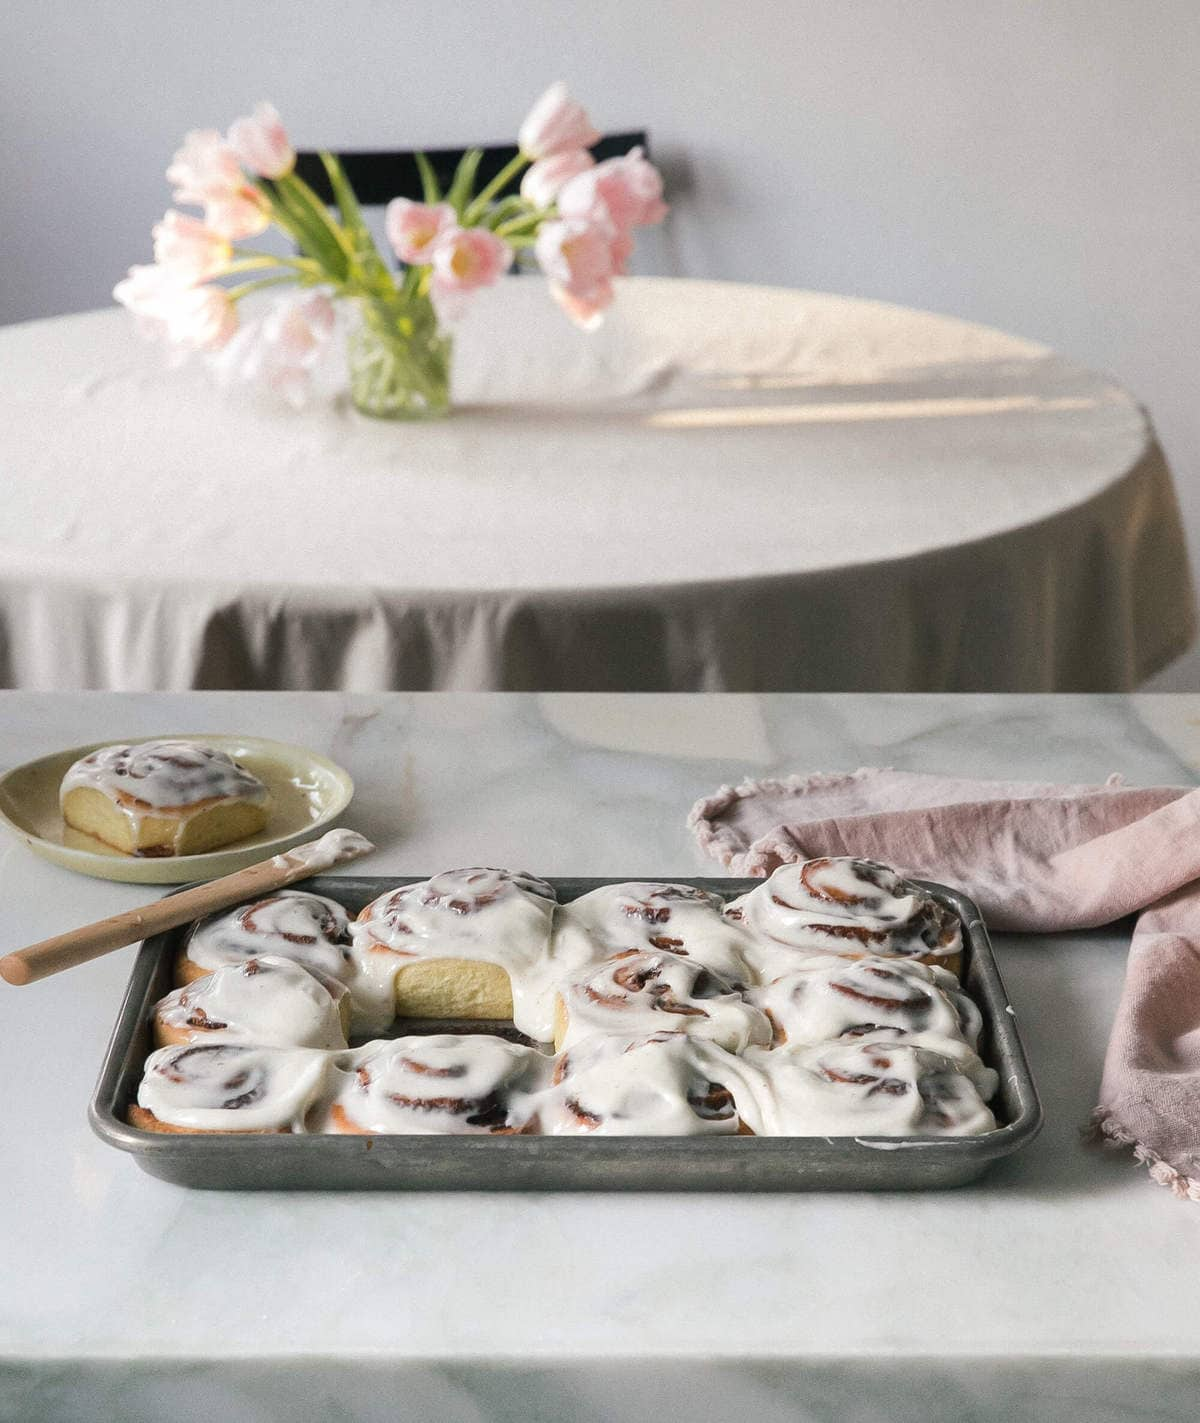 warm cinnamon rolls with frosting with center roll removed